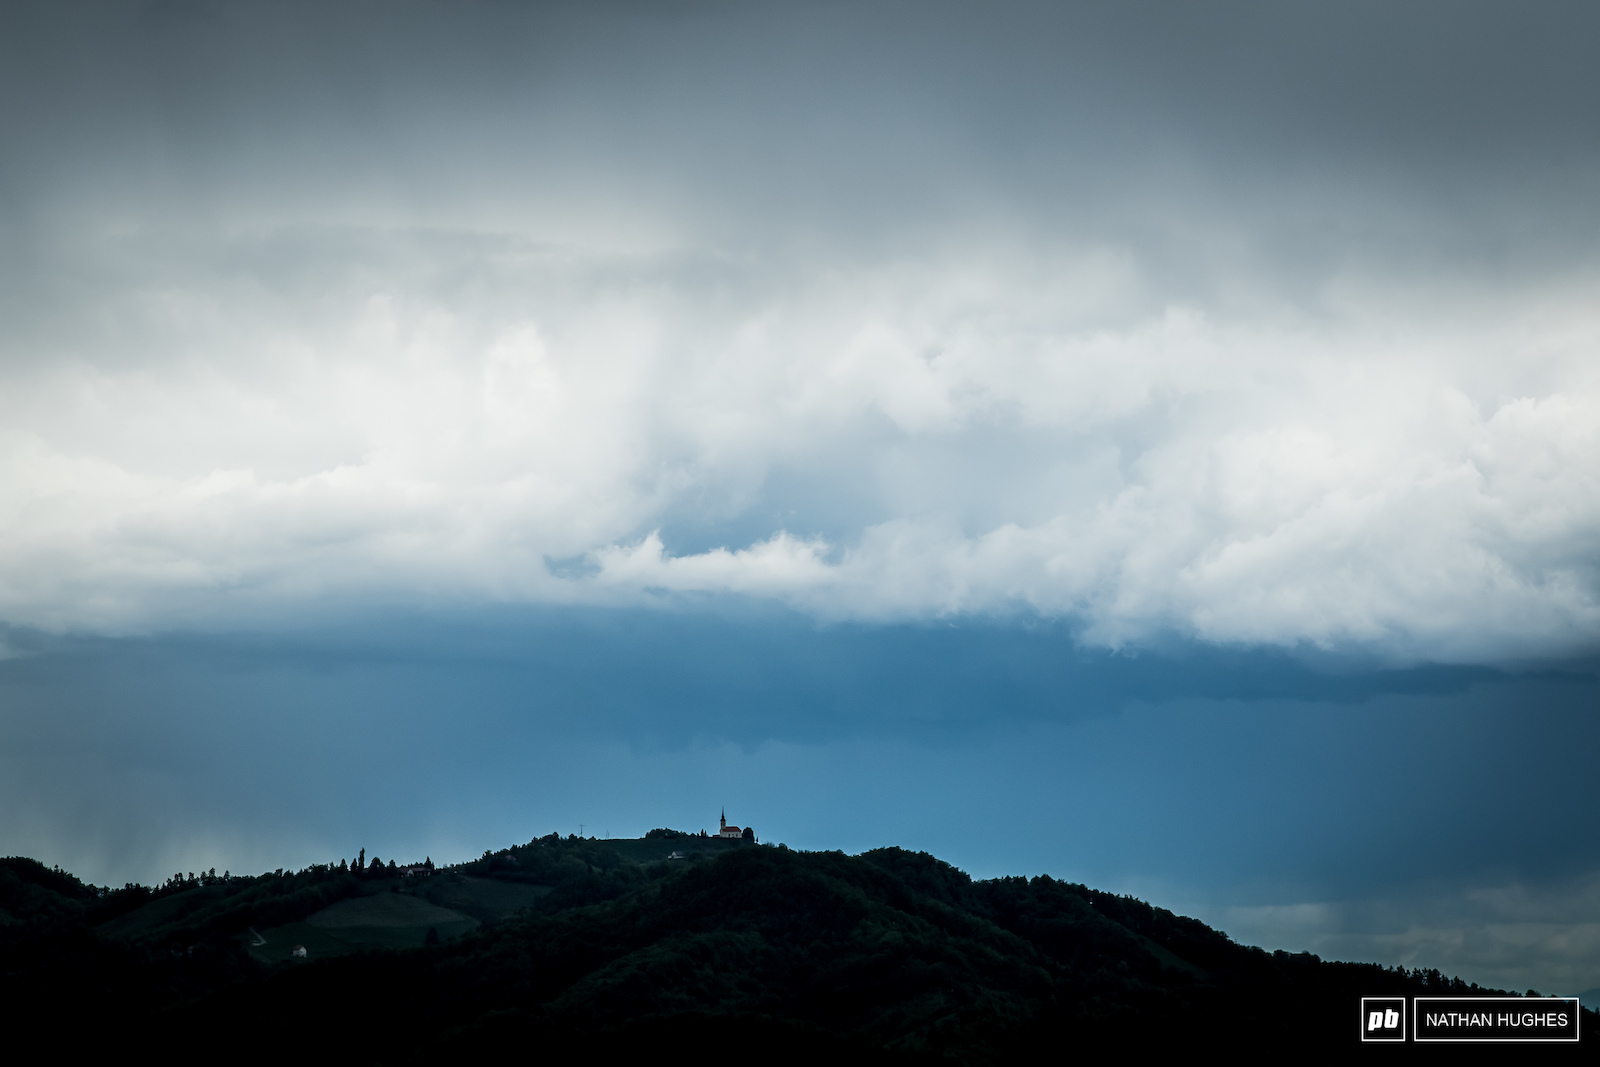 Slovenian storms seem to be swirling around leaving tomorrow s forecast a mystery.